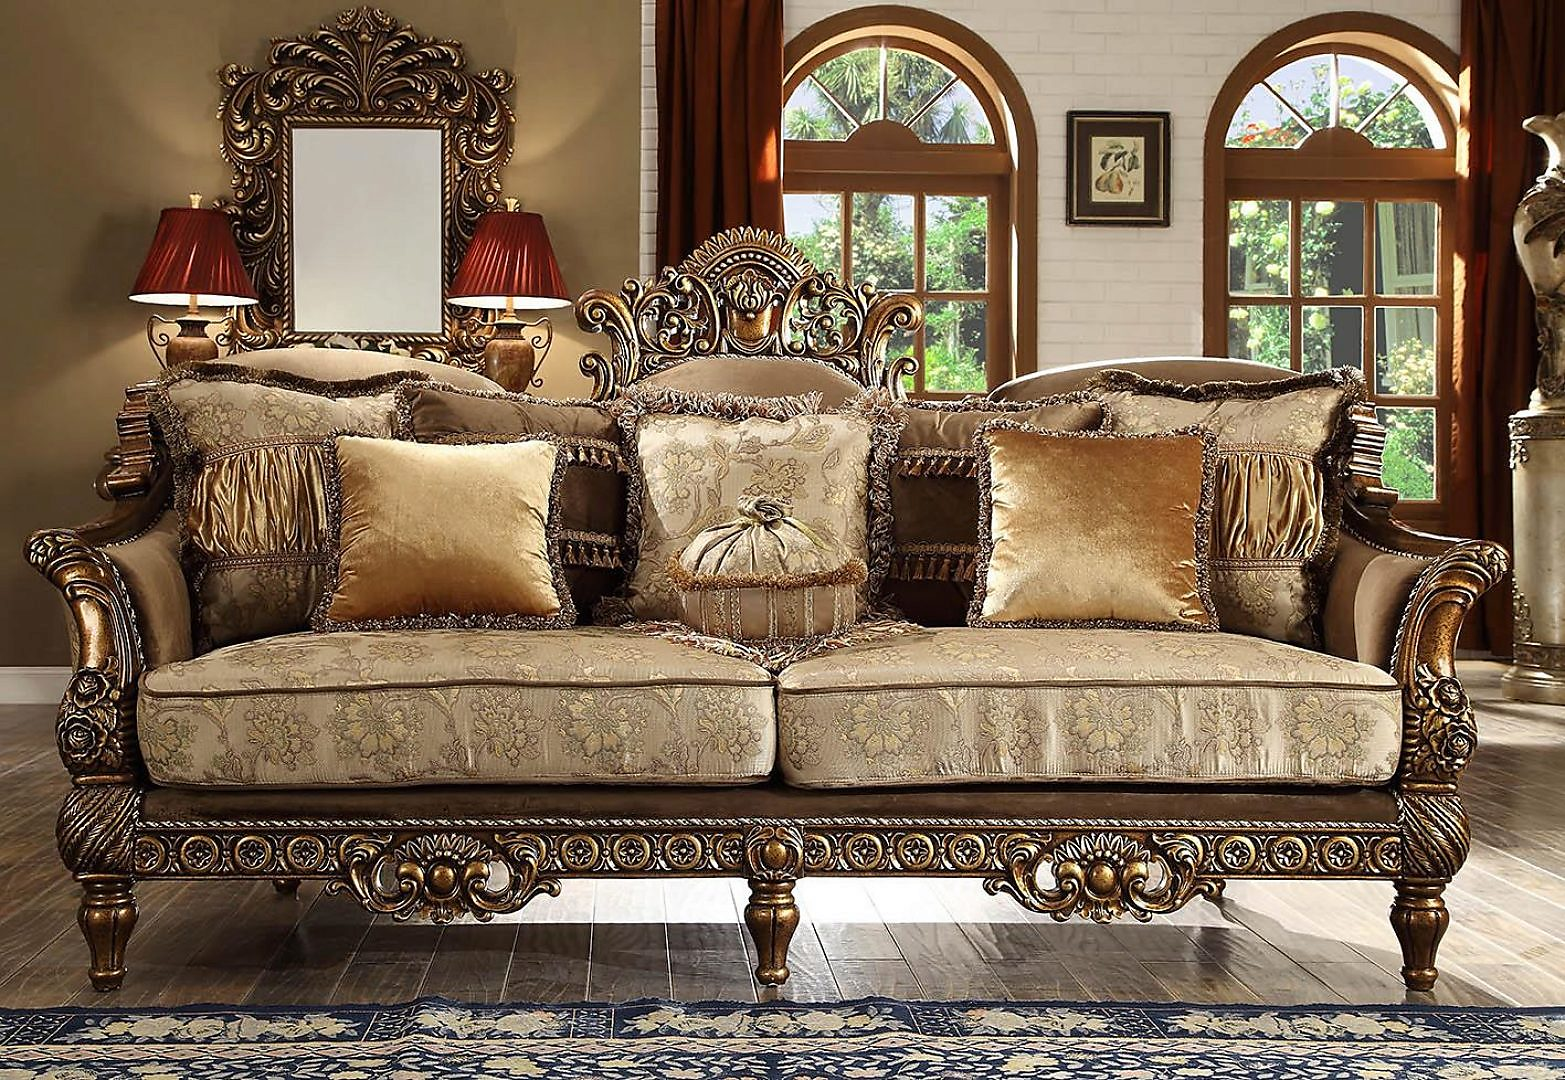 Traditional HD-610 Sofa Loveseat and Chair Set 3Pcs by Homey Design